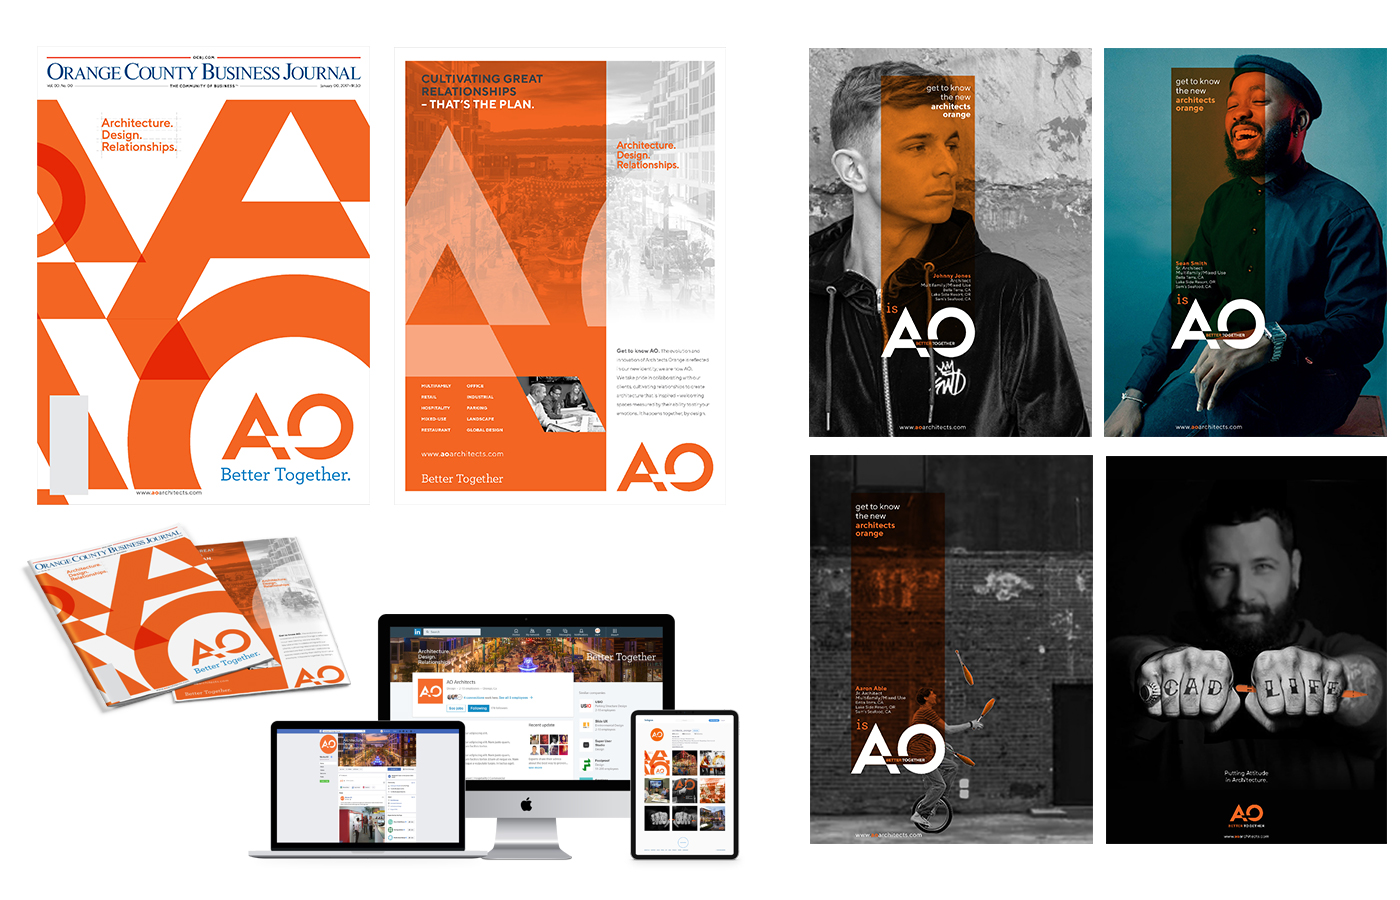 AO-Architects Orange